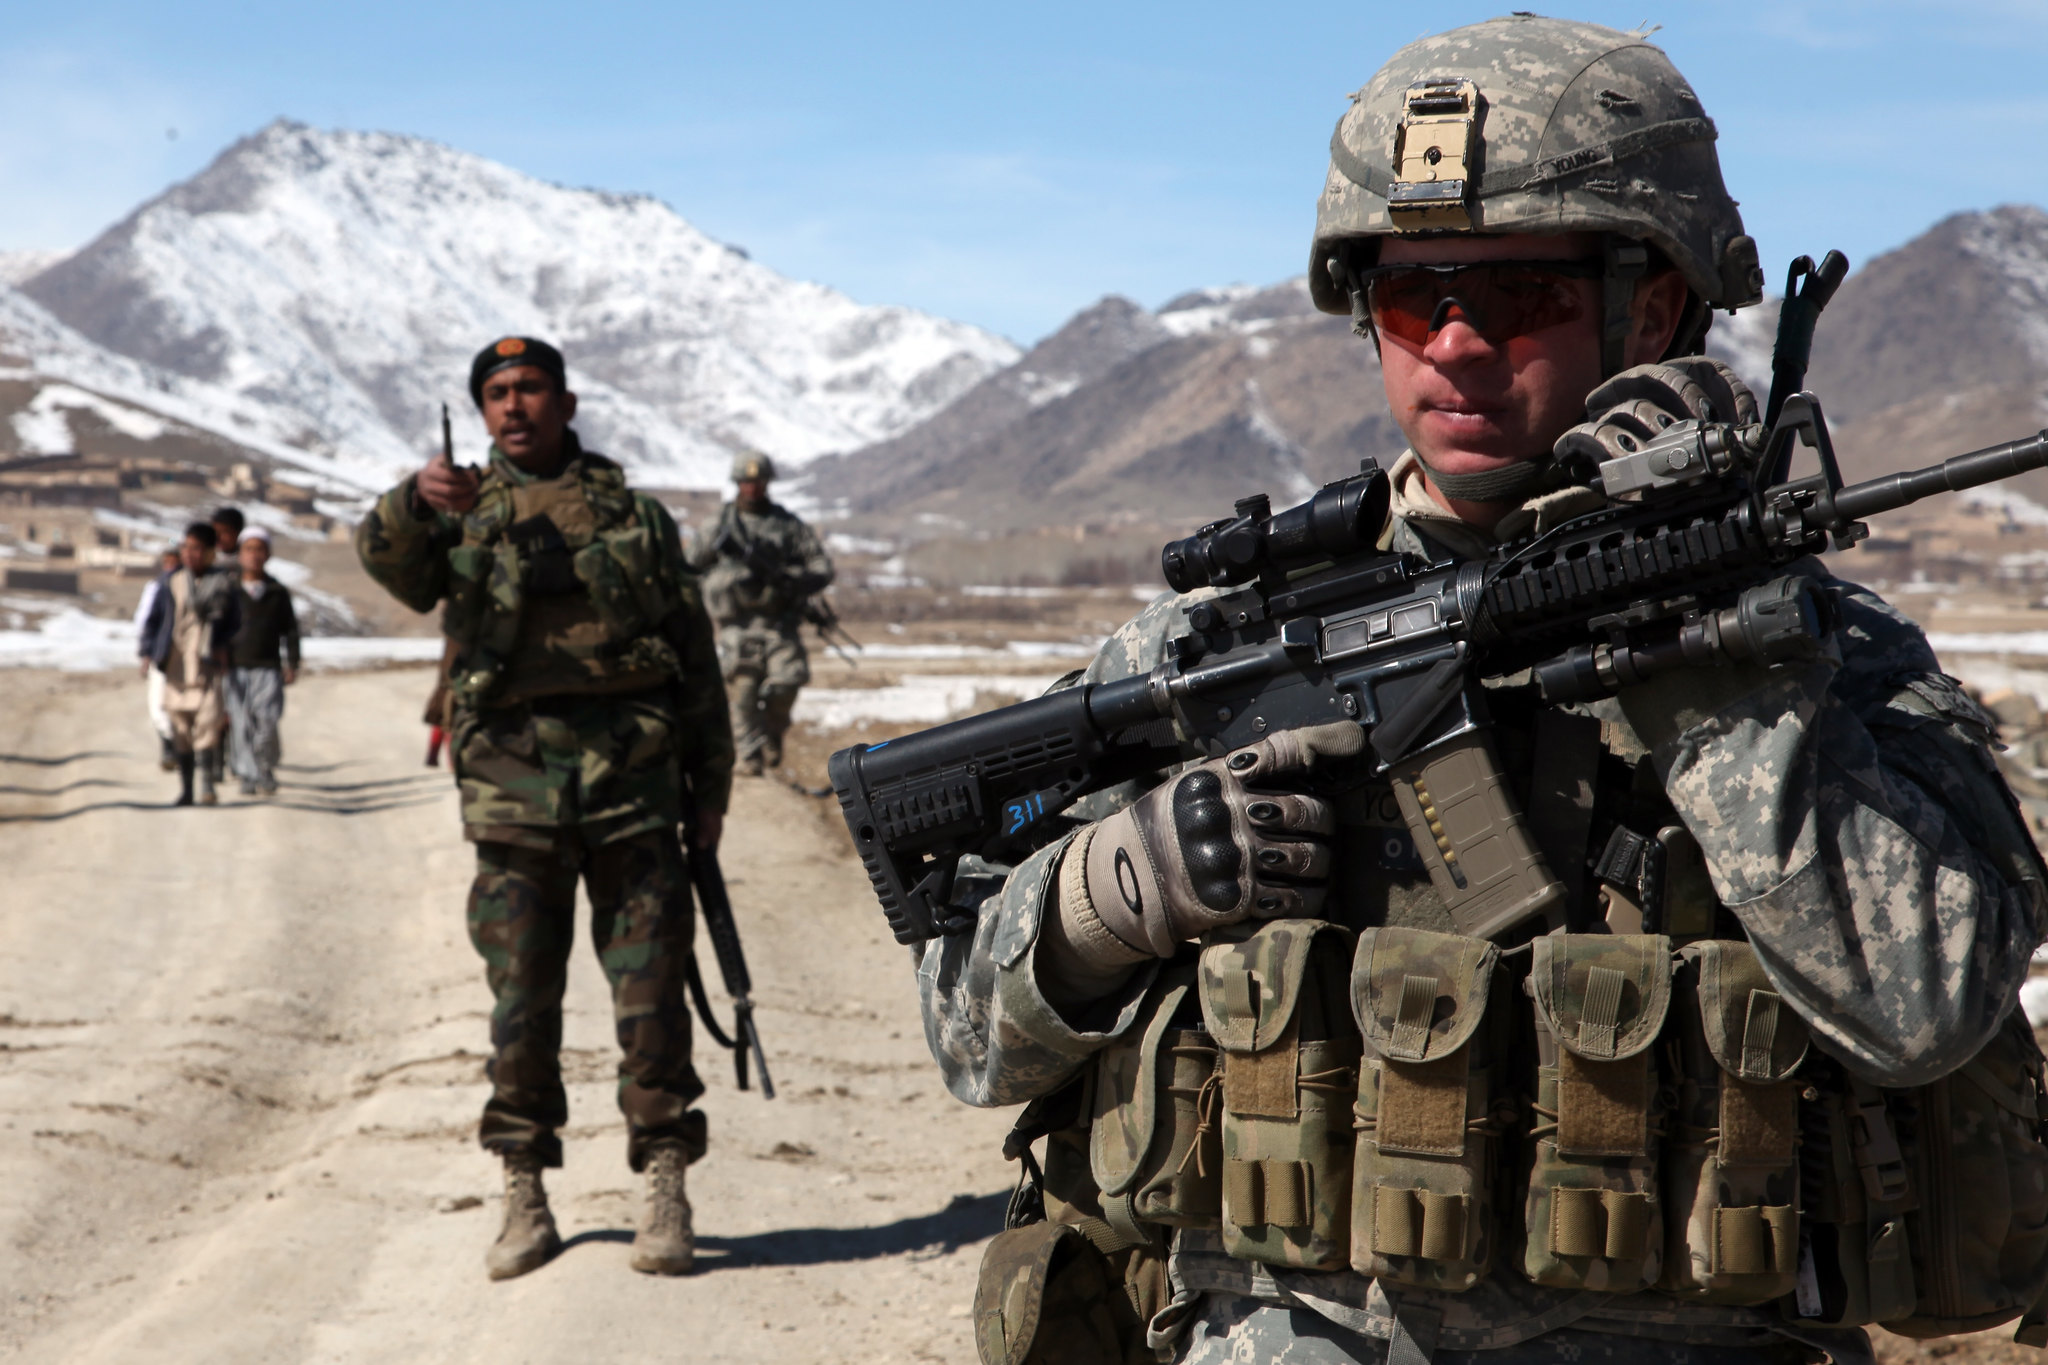 Veterans respond to Afghanistan chaos